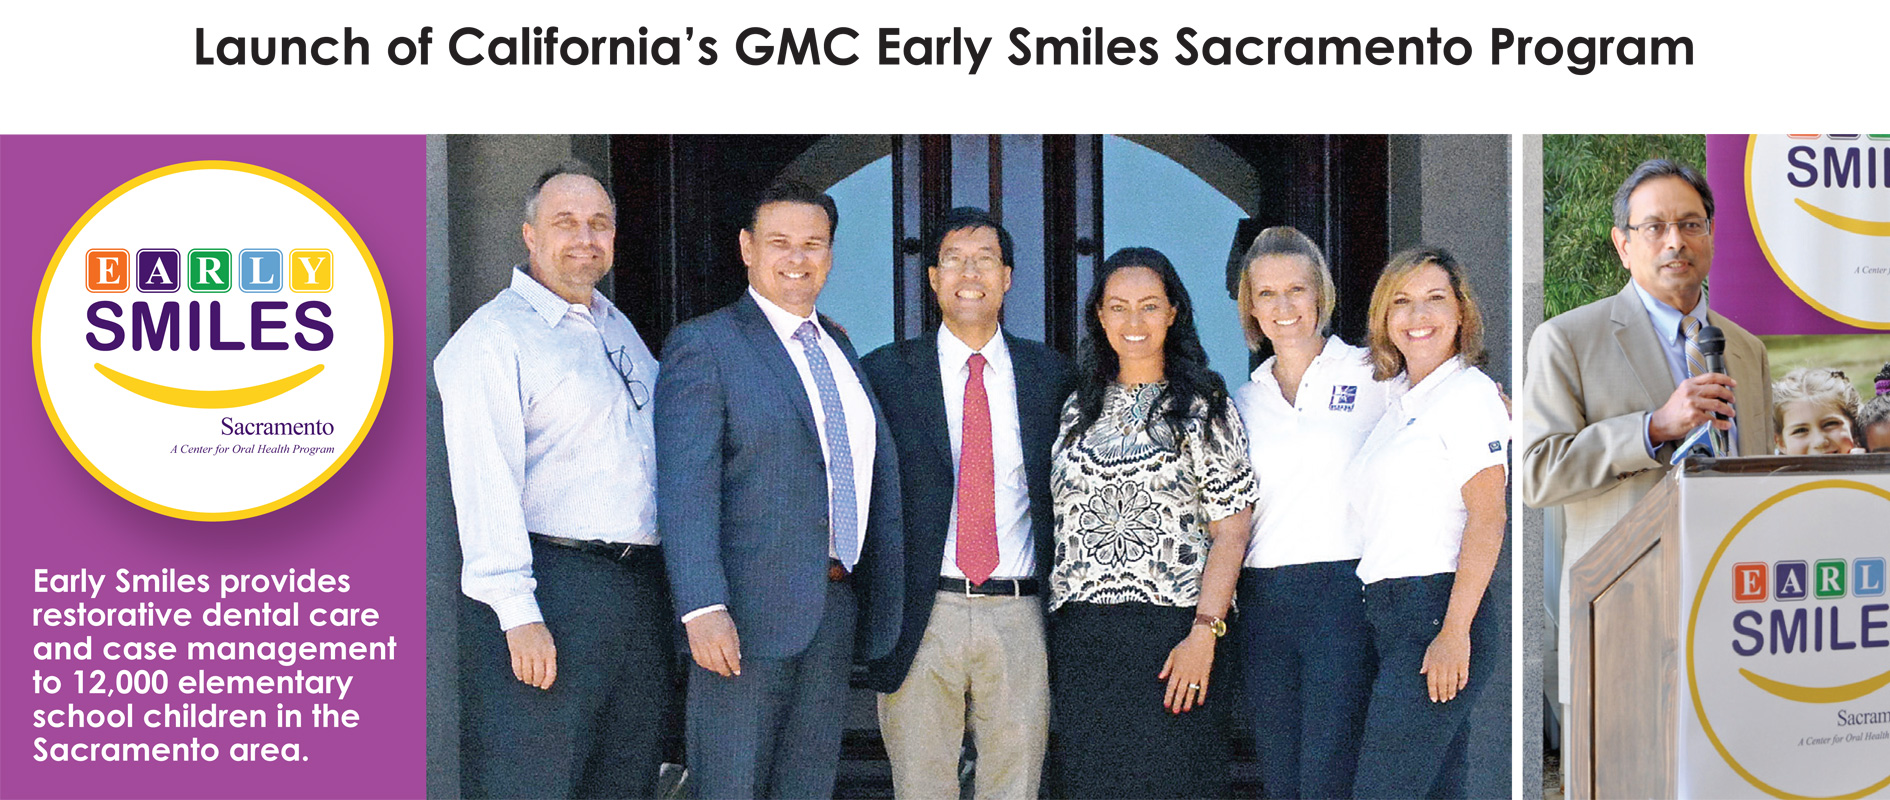 CA's GMC Early Smiles Sacramento program